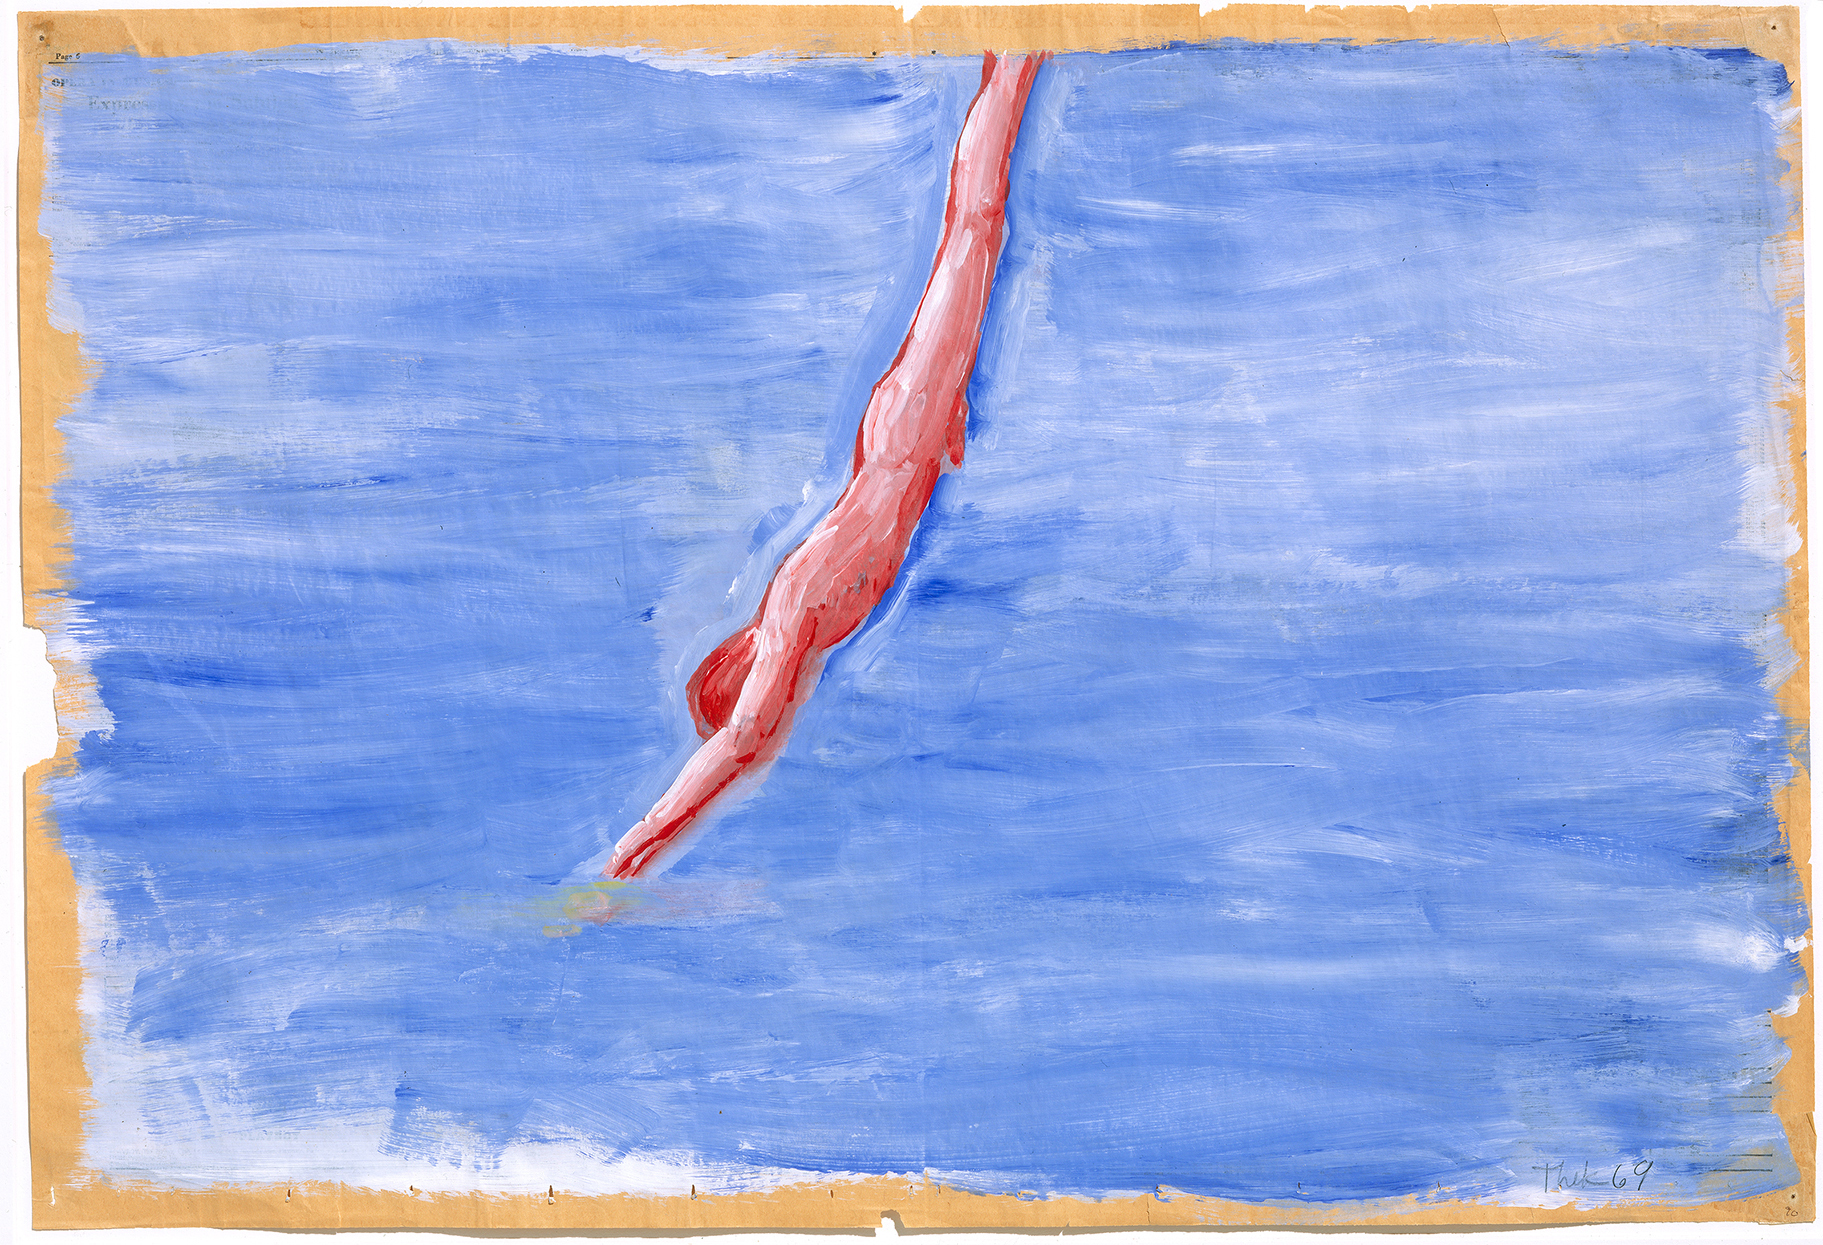 In his 1970 work Untitled (Diver), Paul Thek uses acrylic on newspaper. The newspaper buckles under the paint, making waves beneath the diver.